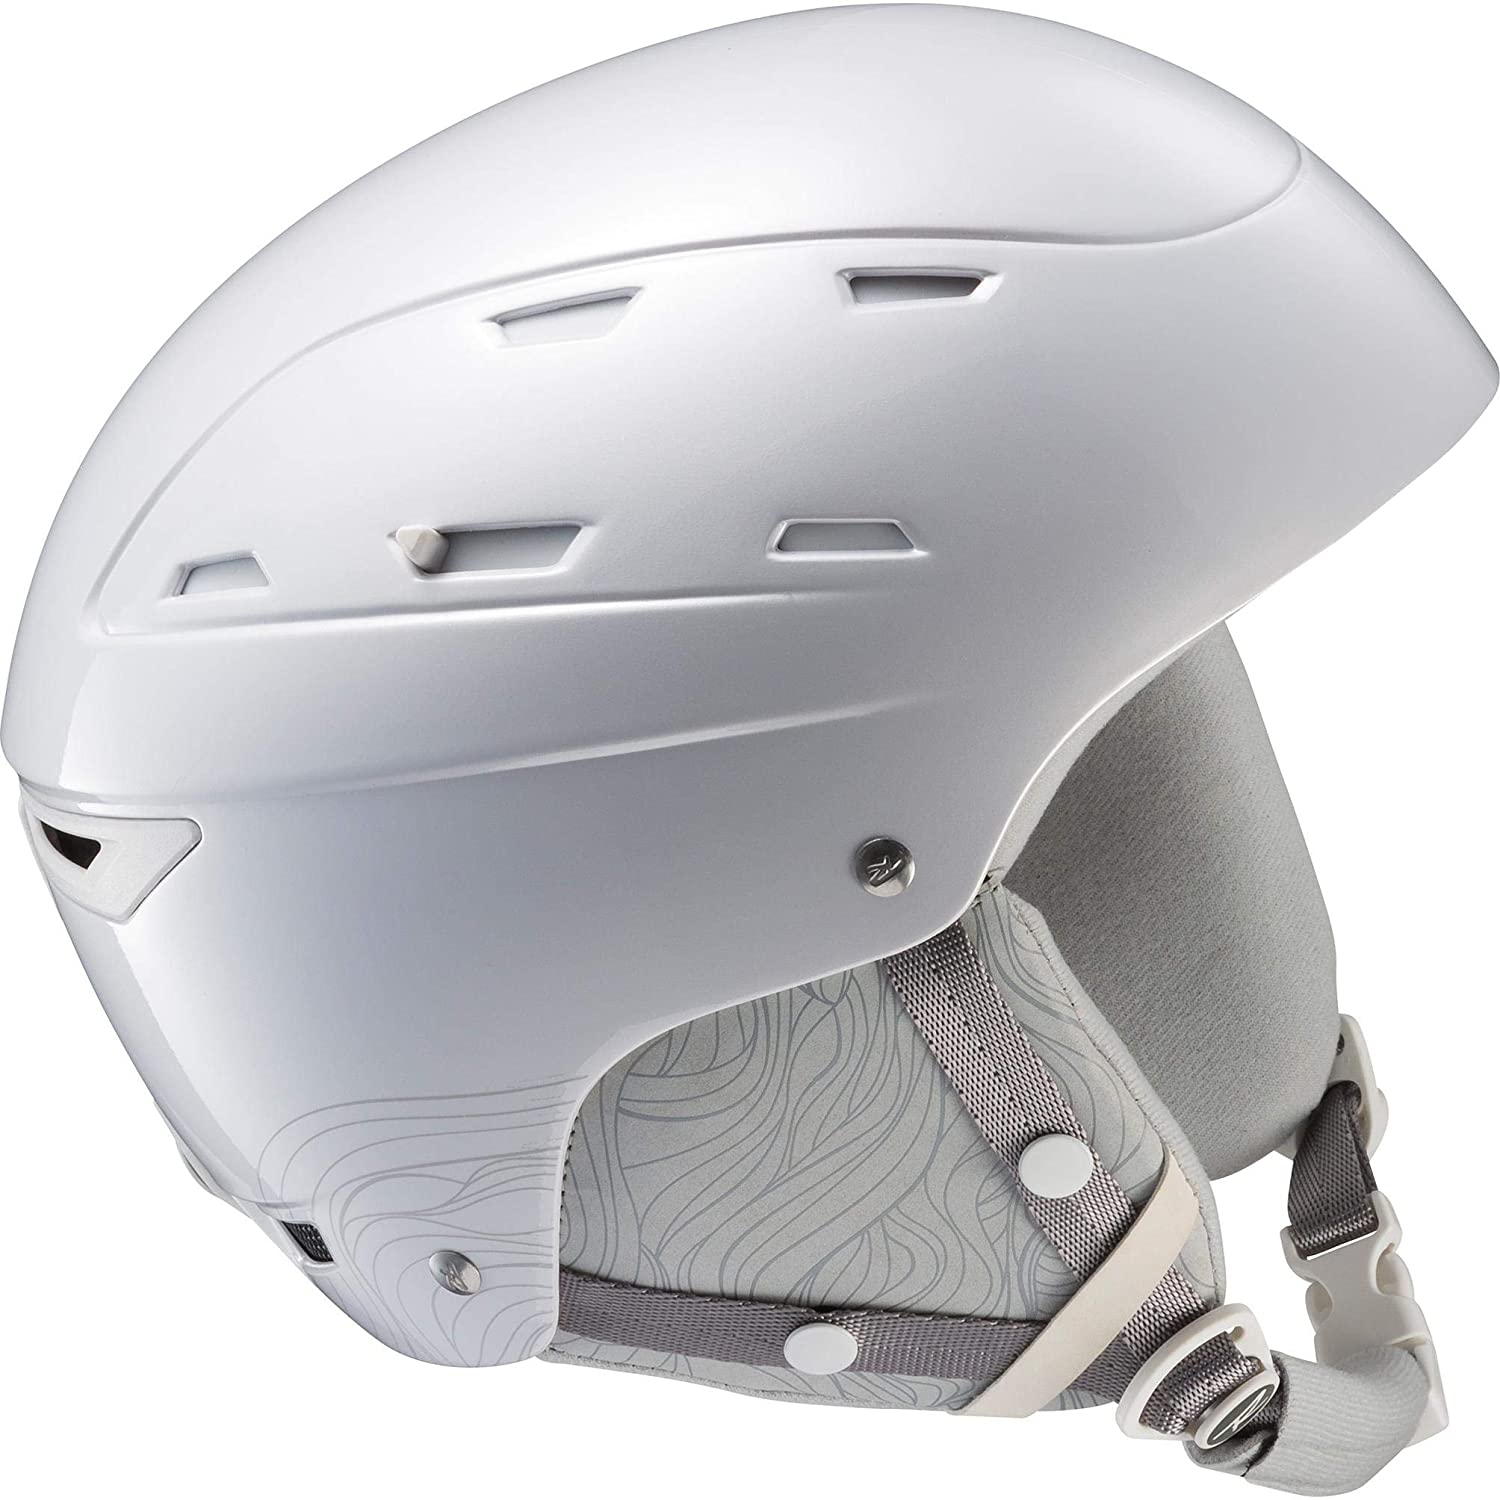 Rossignol Reply Impacts W Skihelm für Damen, Damen, RKHH404, Weiß (White/Coral)